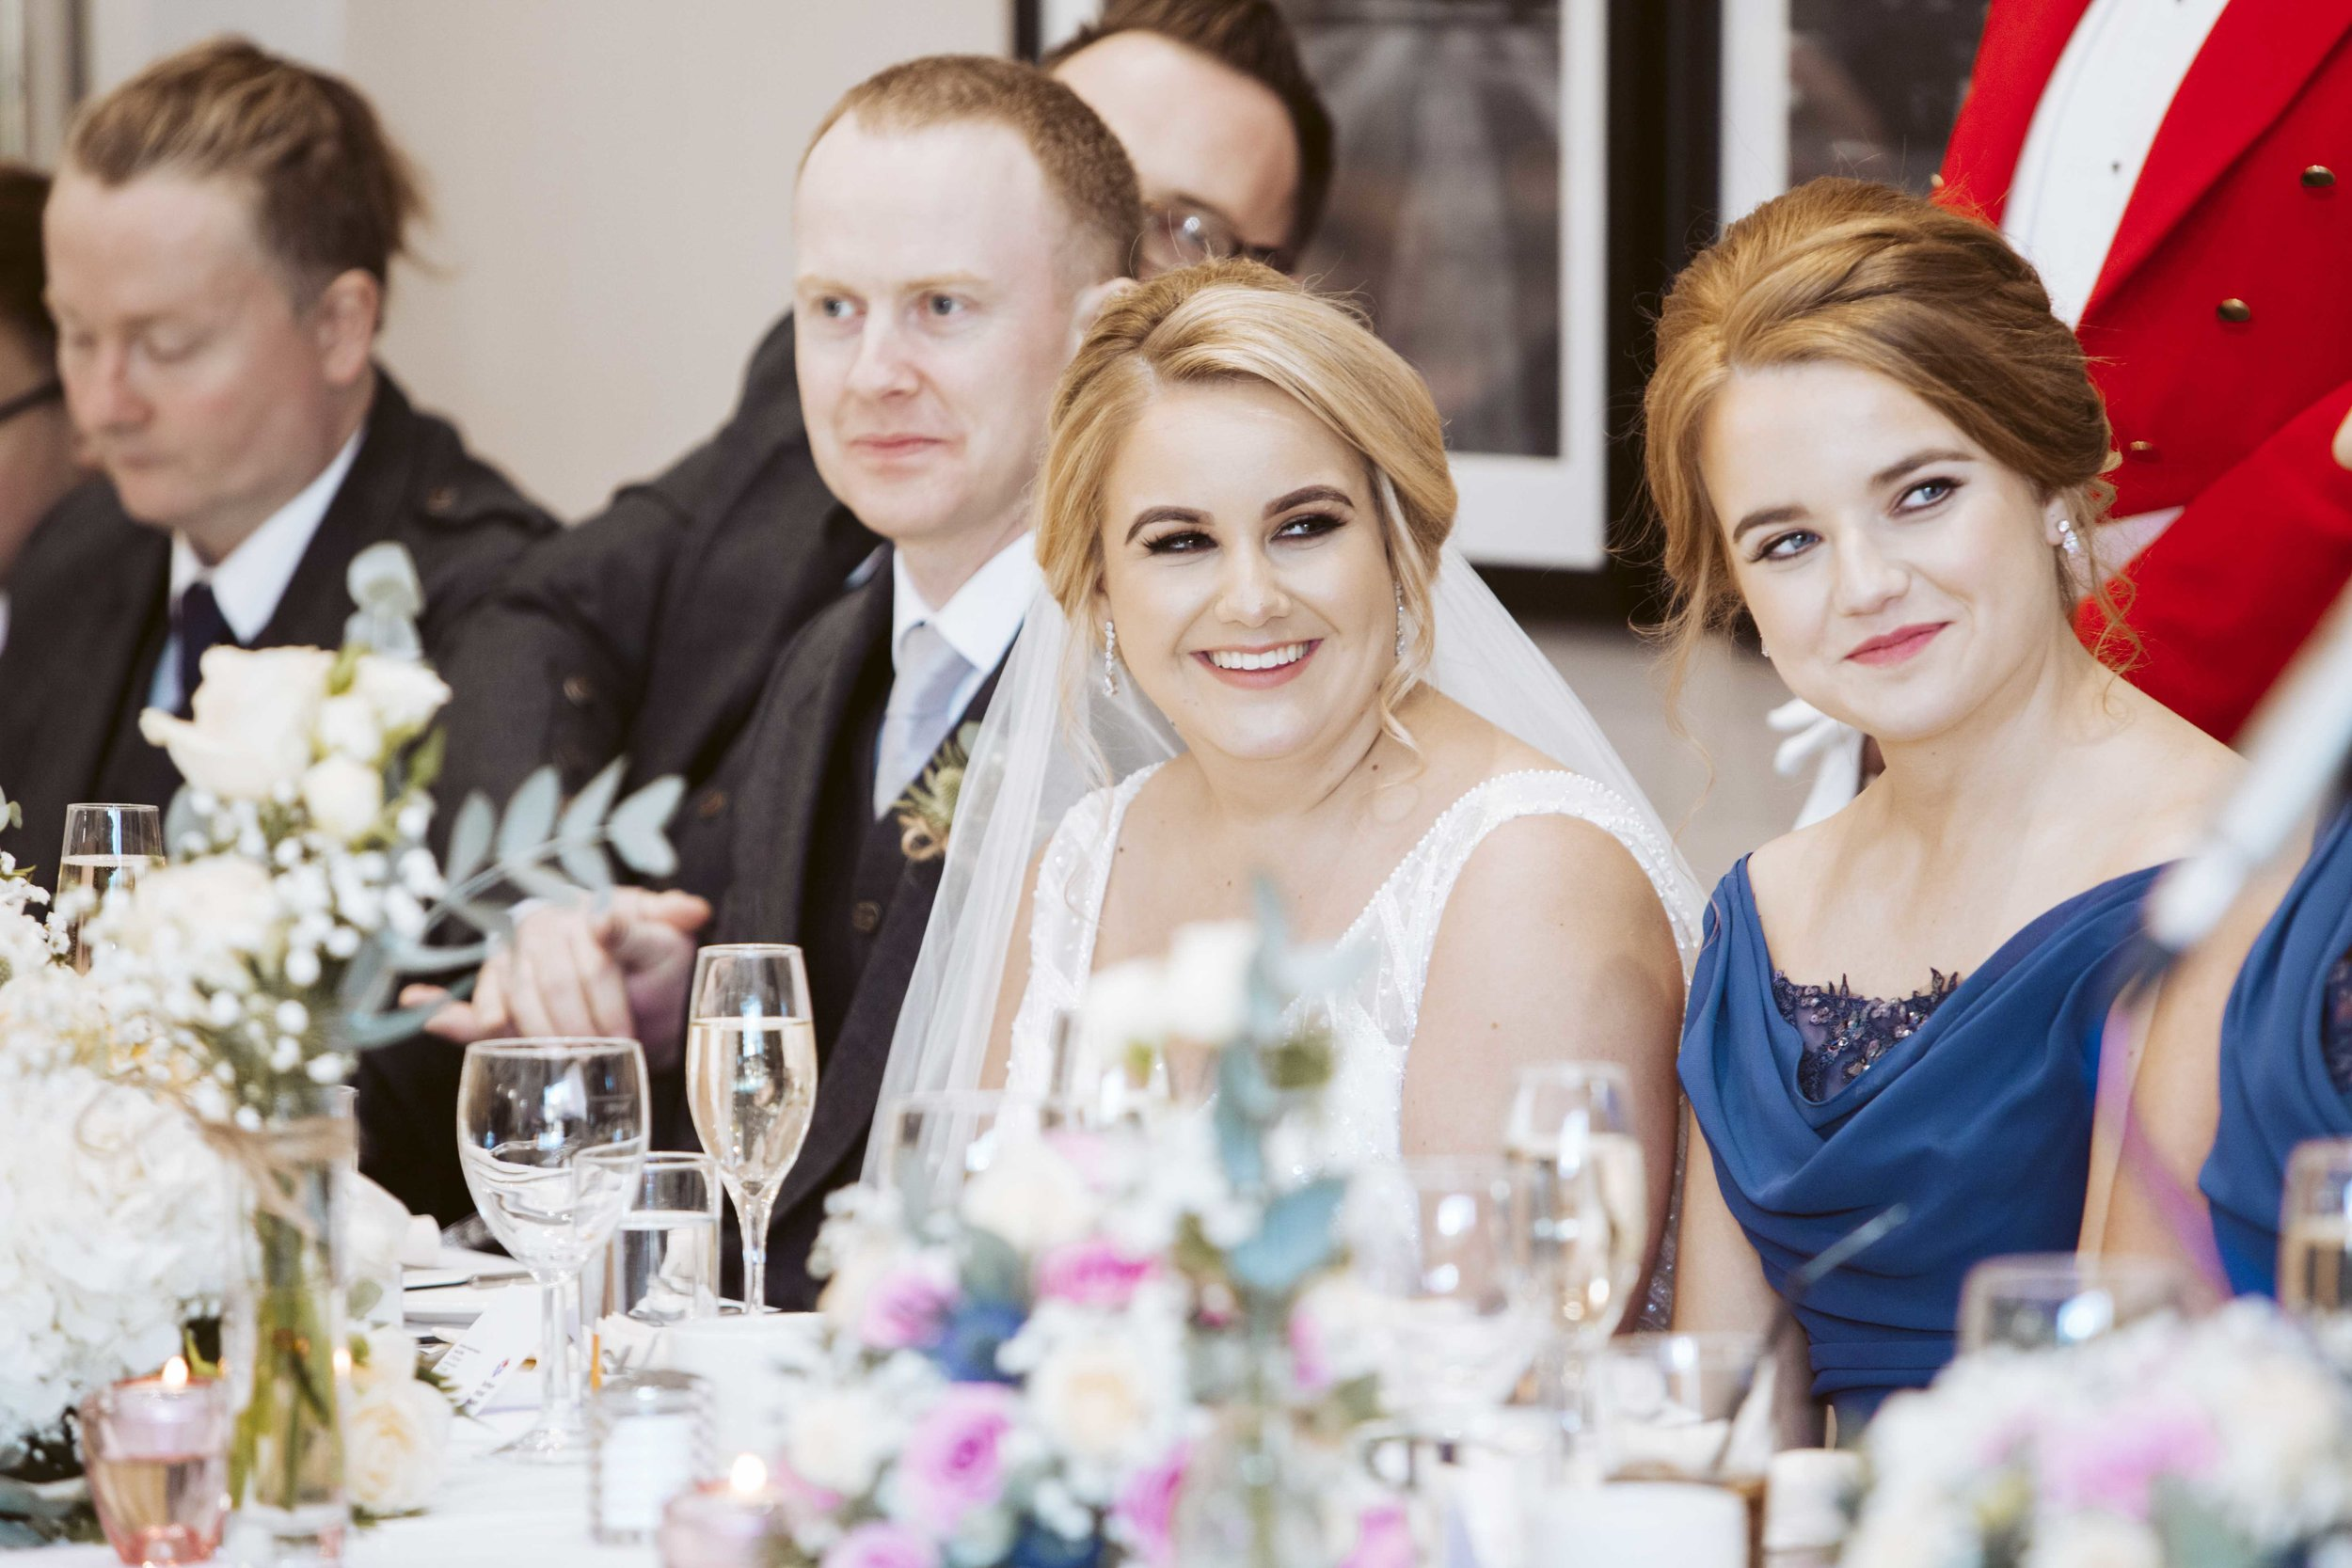 Mar Hall Wedding 2018, Haminsh & Emma McEwan 57.JPG